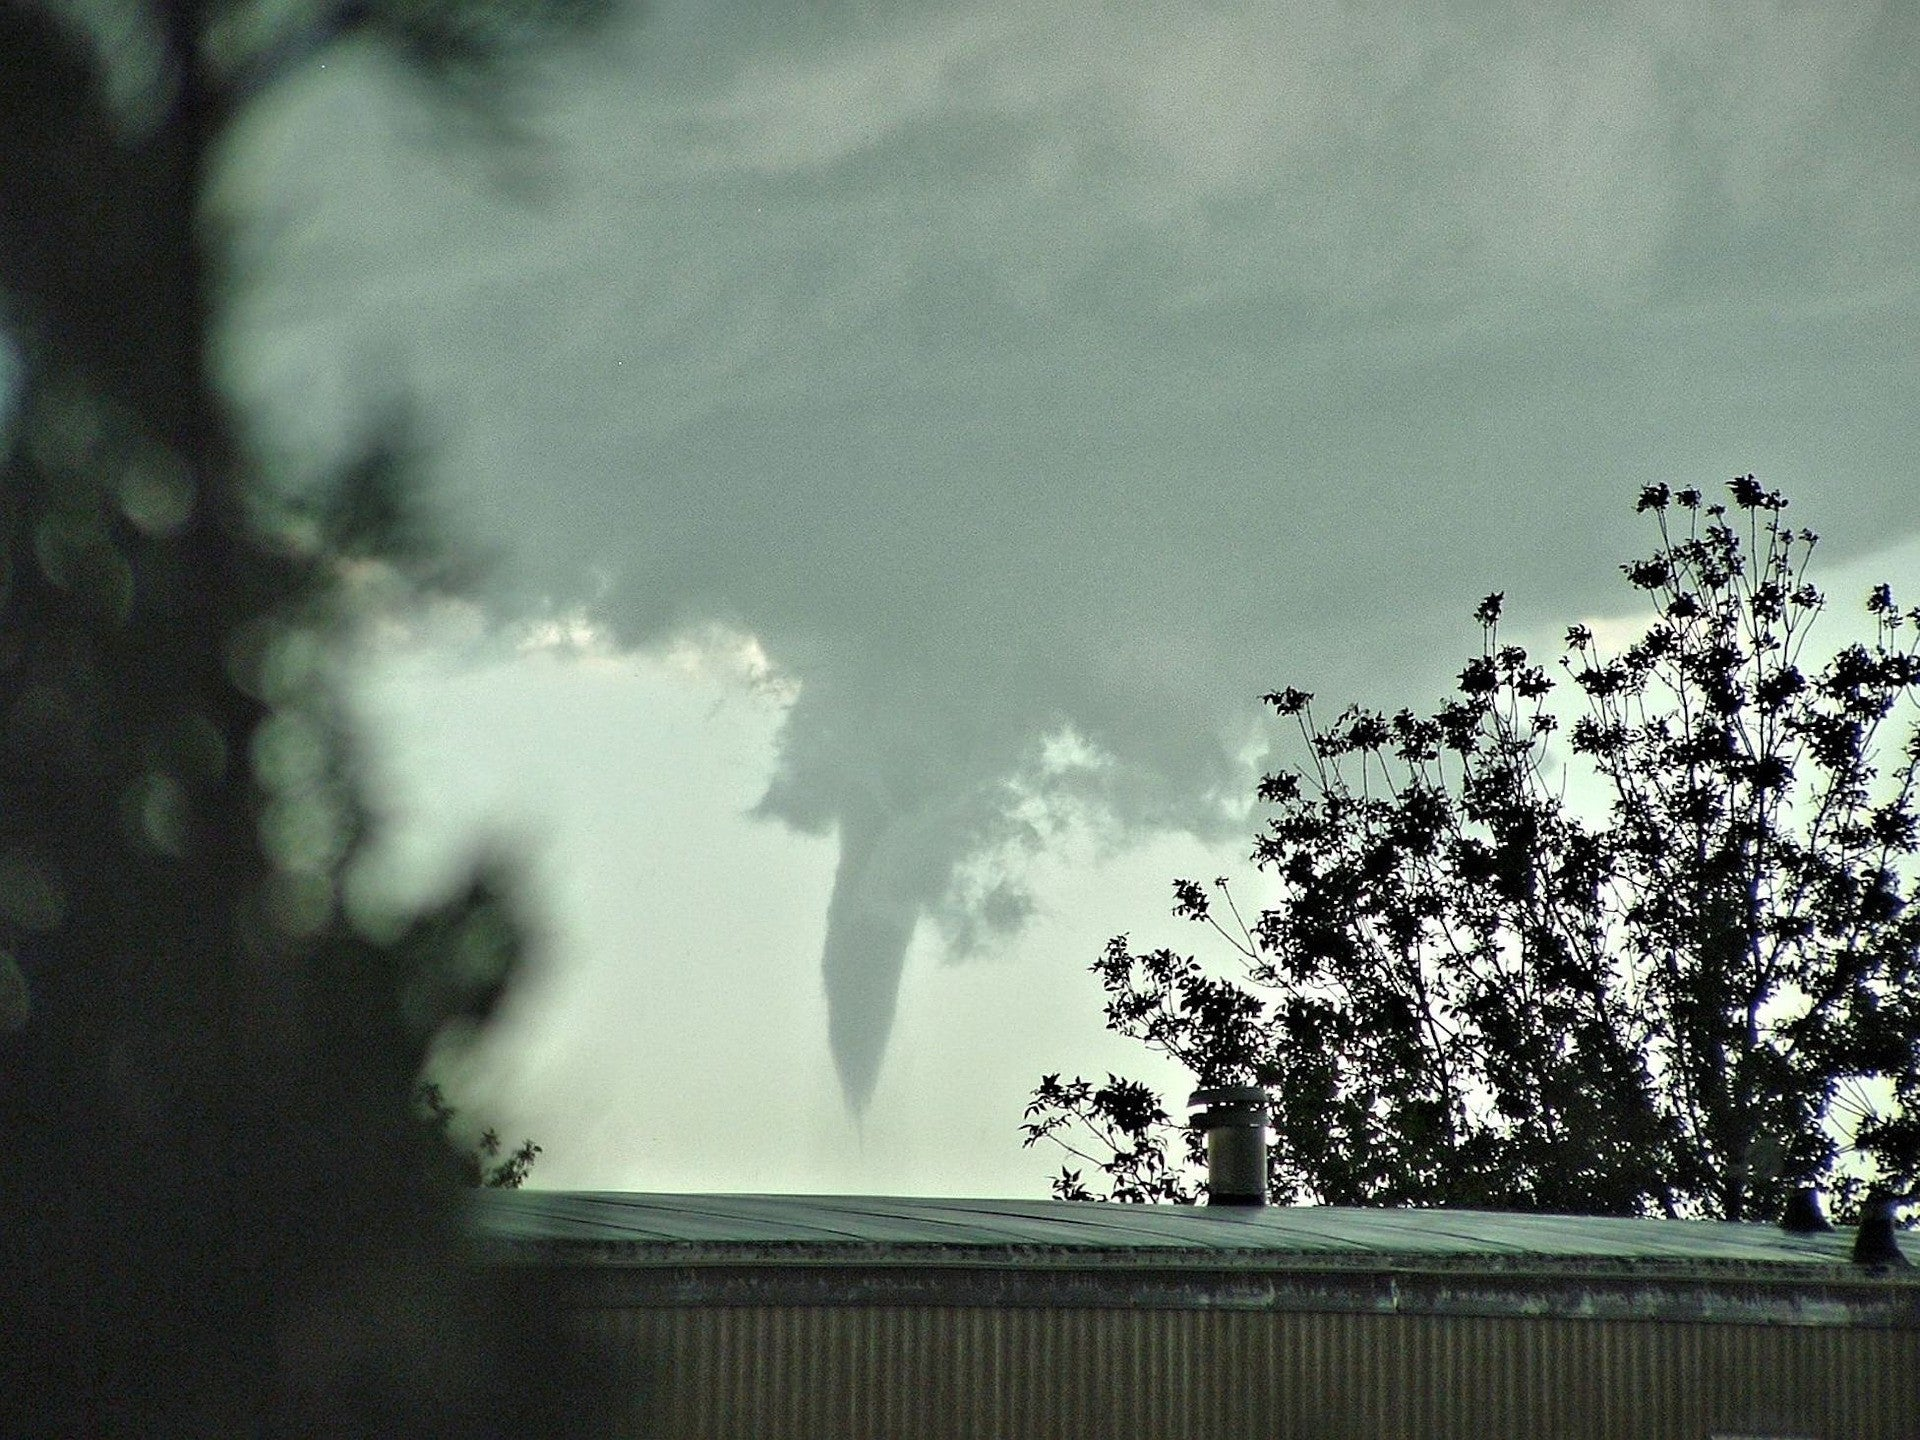 Tornado Season: What You Need to Know